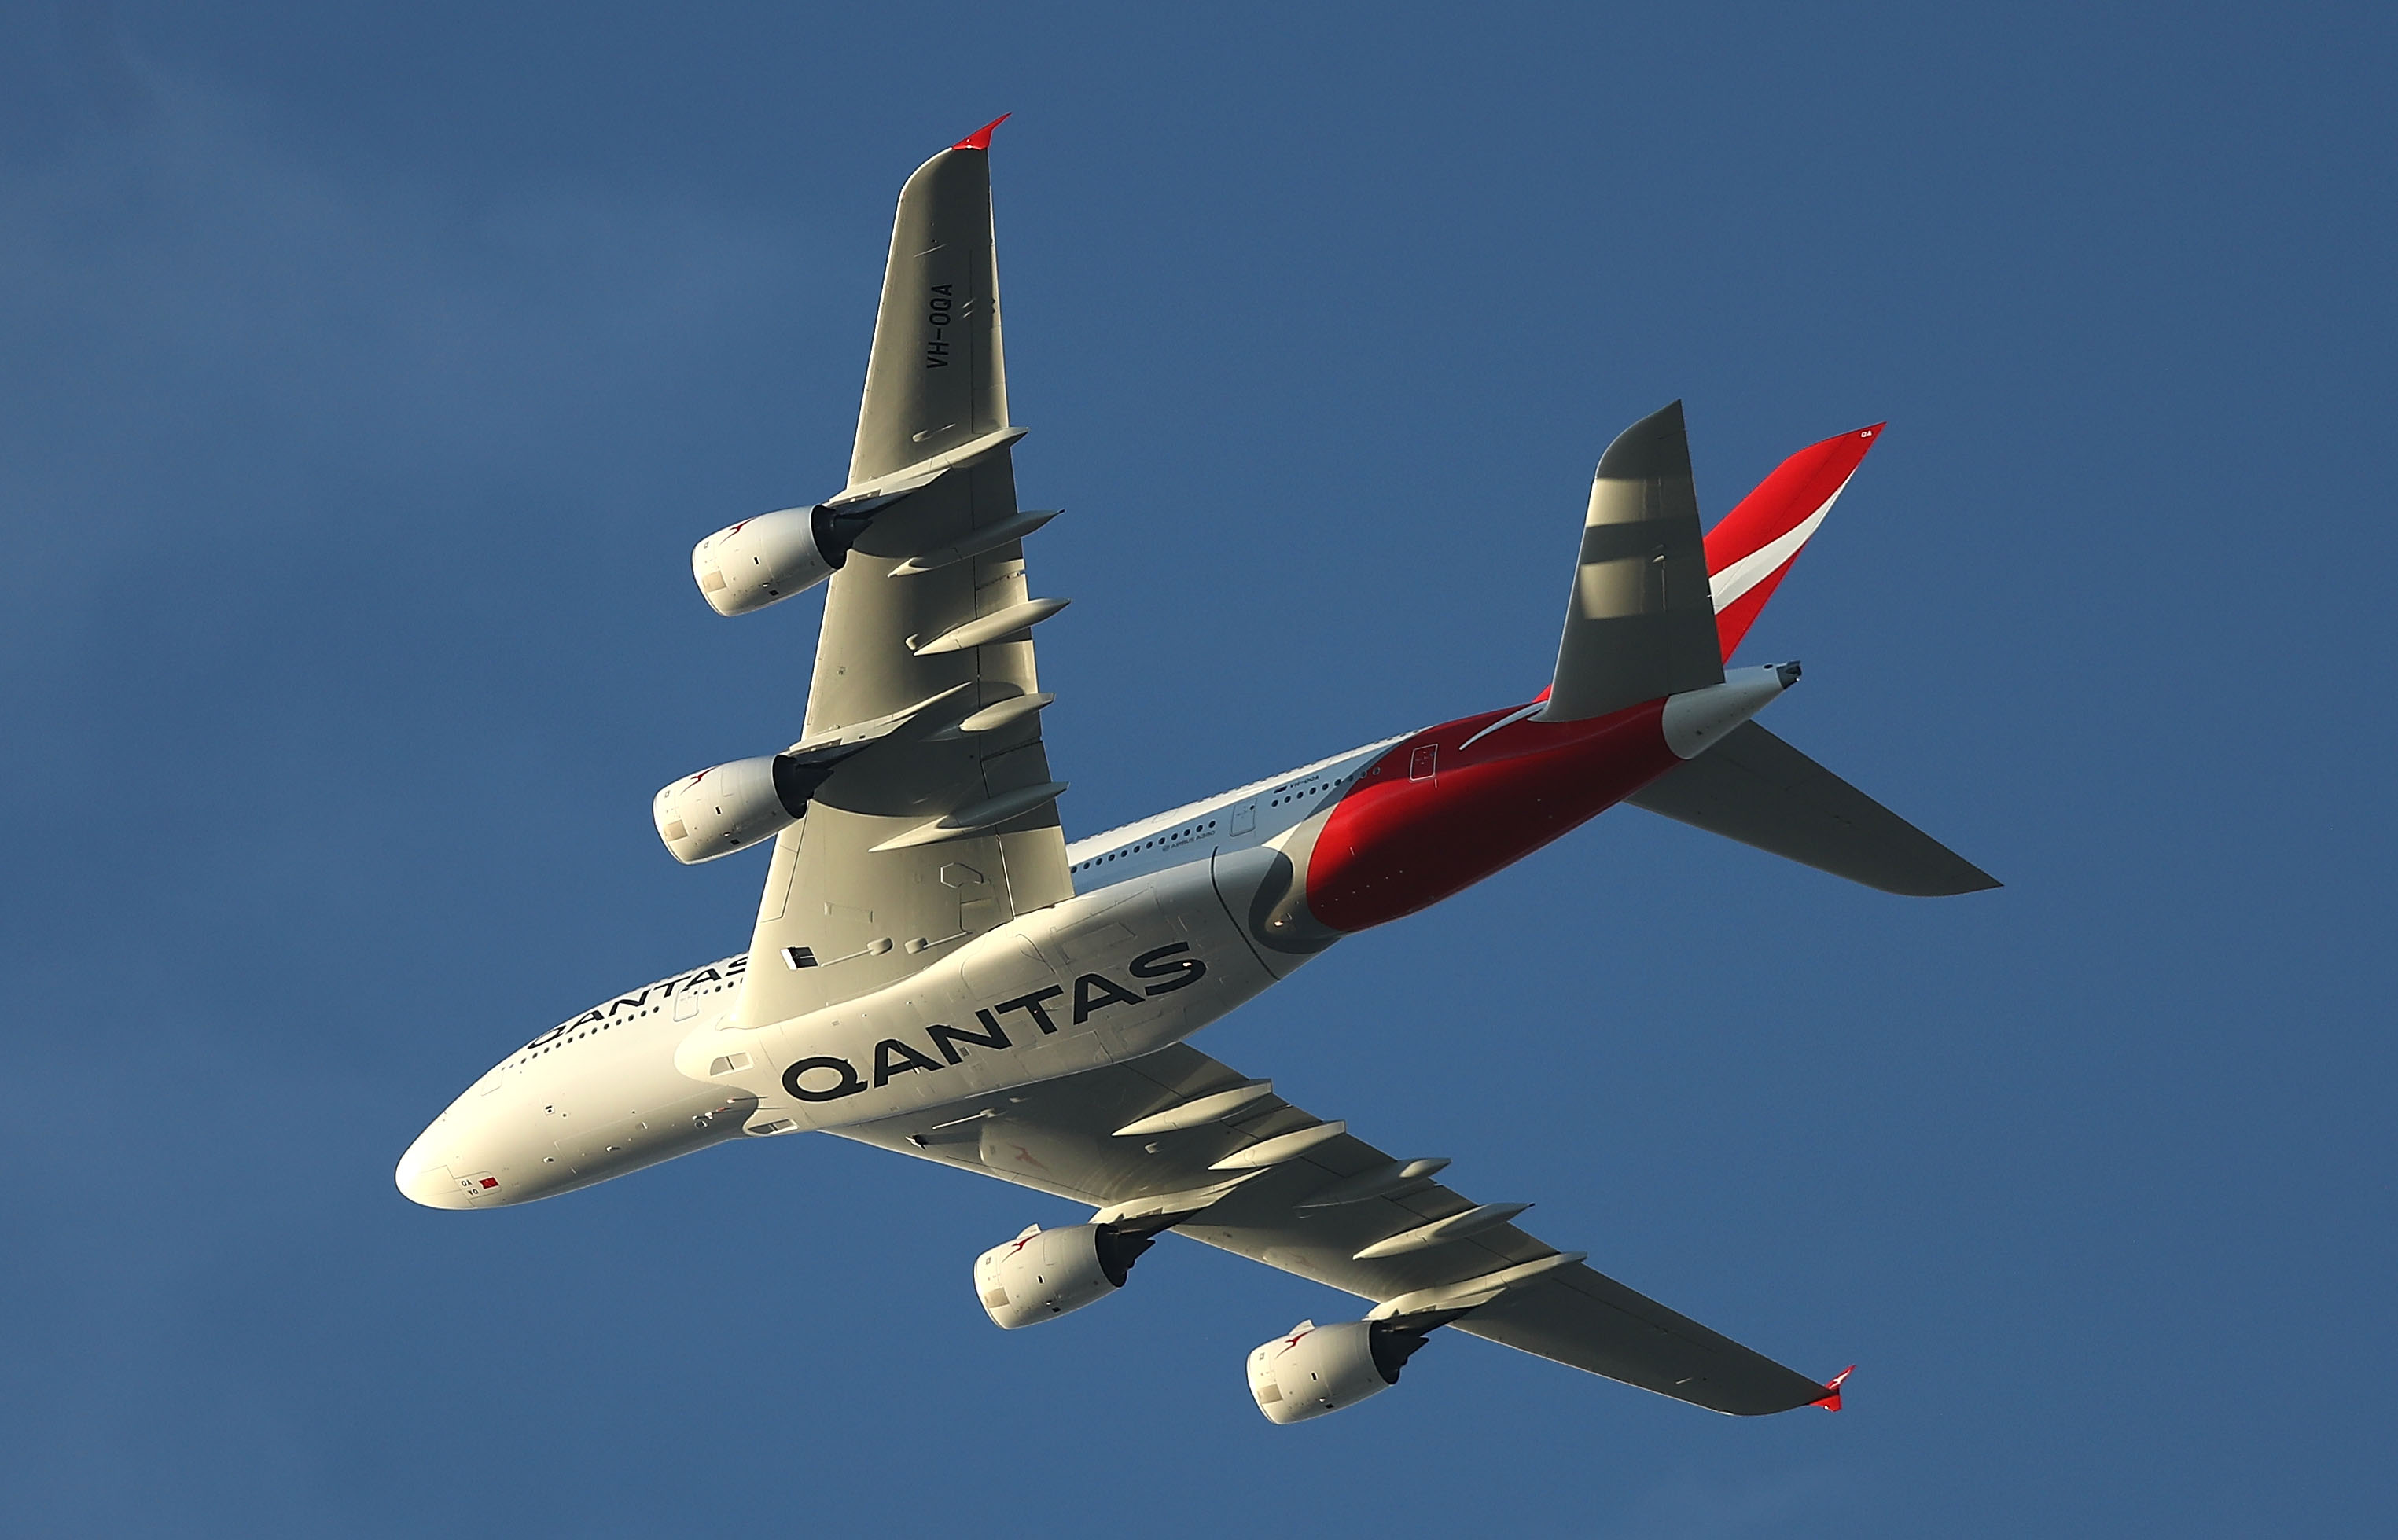 Qantas A380 wings to be checked for cracks | Community News